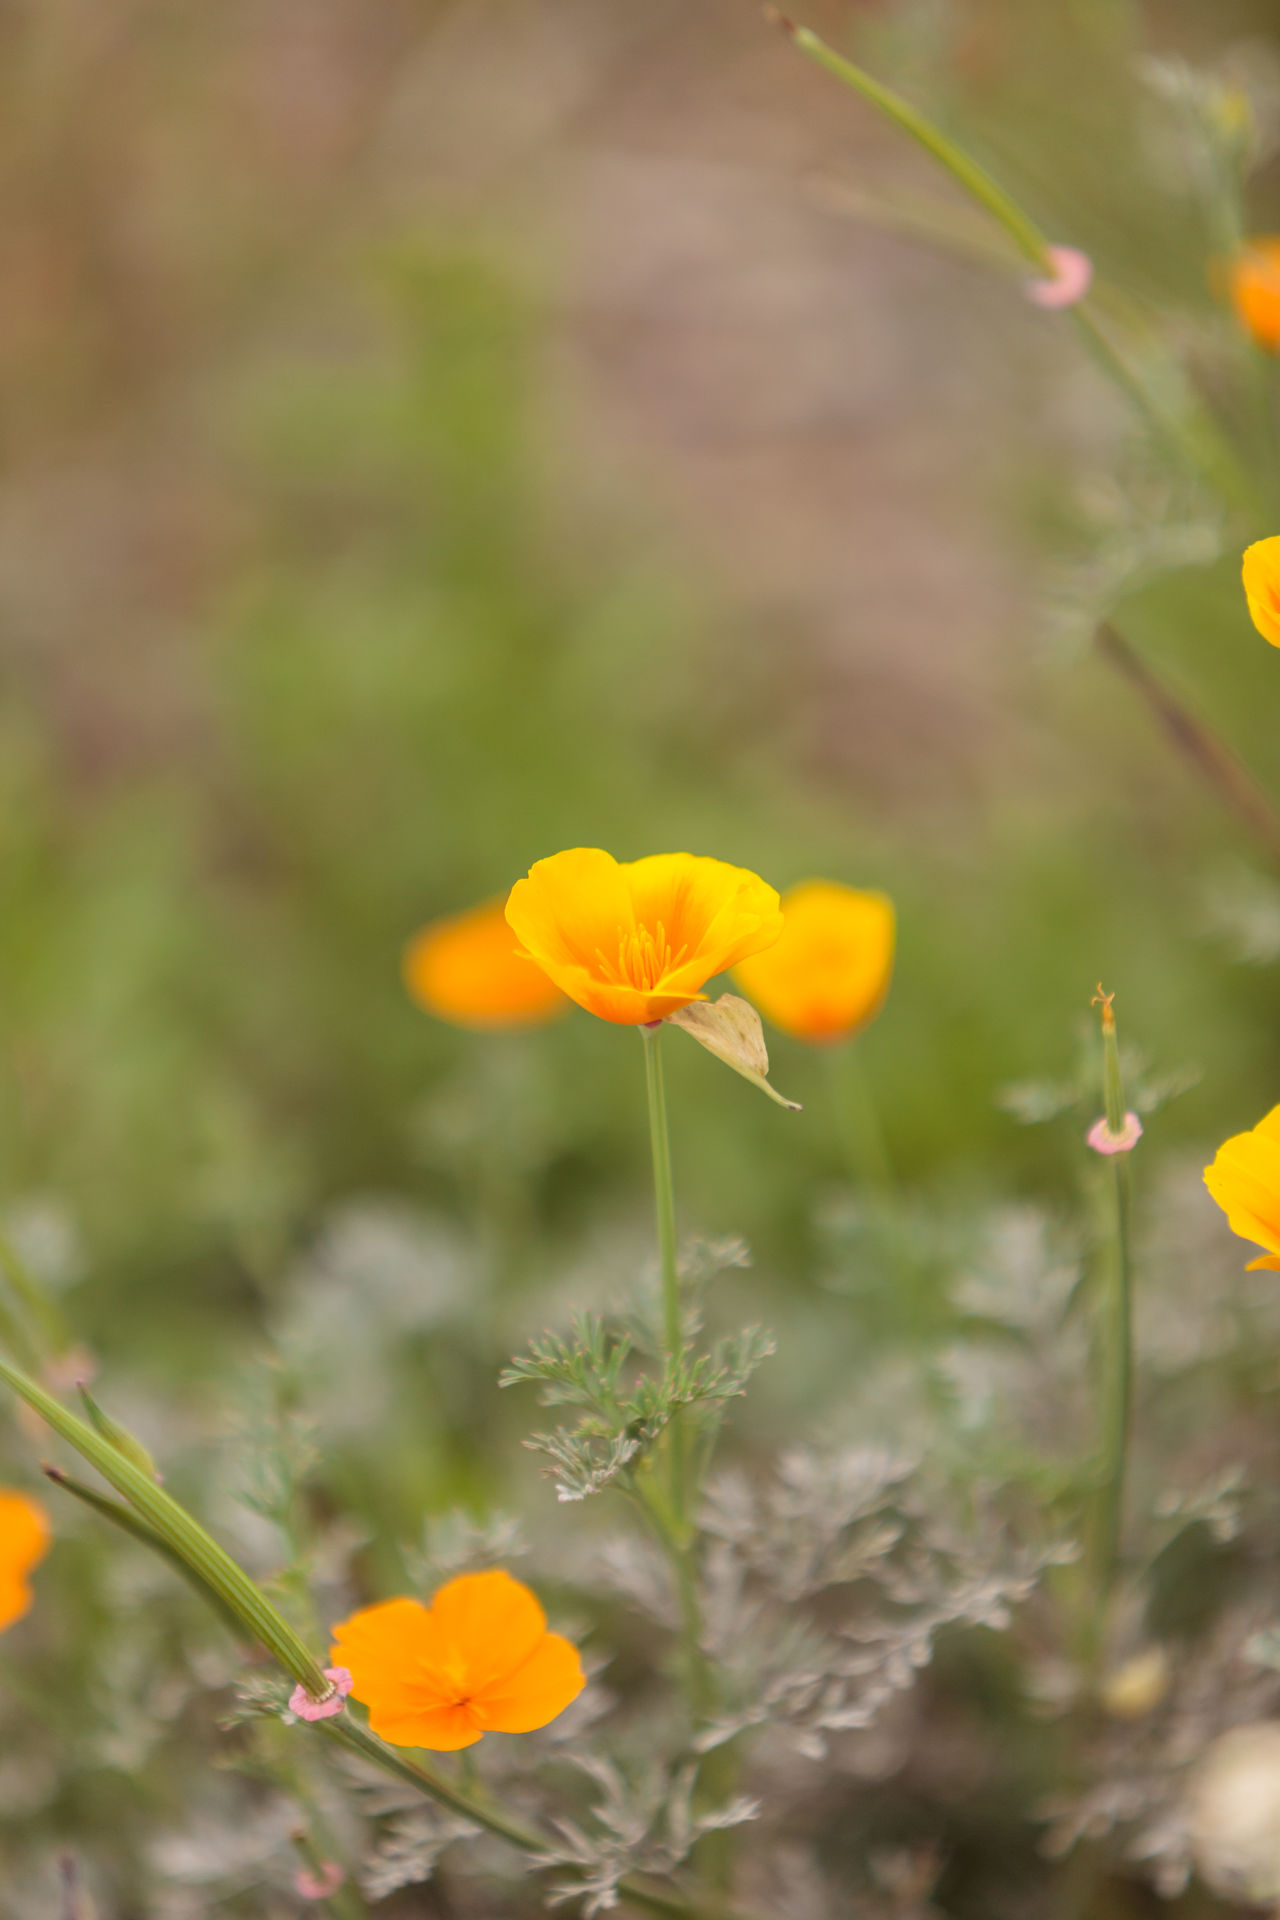 Close up of an orange California Poppy flower Eschscholzia californica in a field in Big Sur Beauty In Nature Big Sur California California Poppy Close-up Day Eschscholzia Californica Flower Flower Head Flowers Fragility Freshness Growth Nature No People Orange Flower Outdoors Plant Poppy Flowers